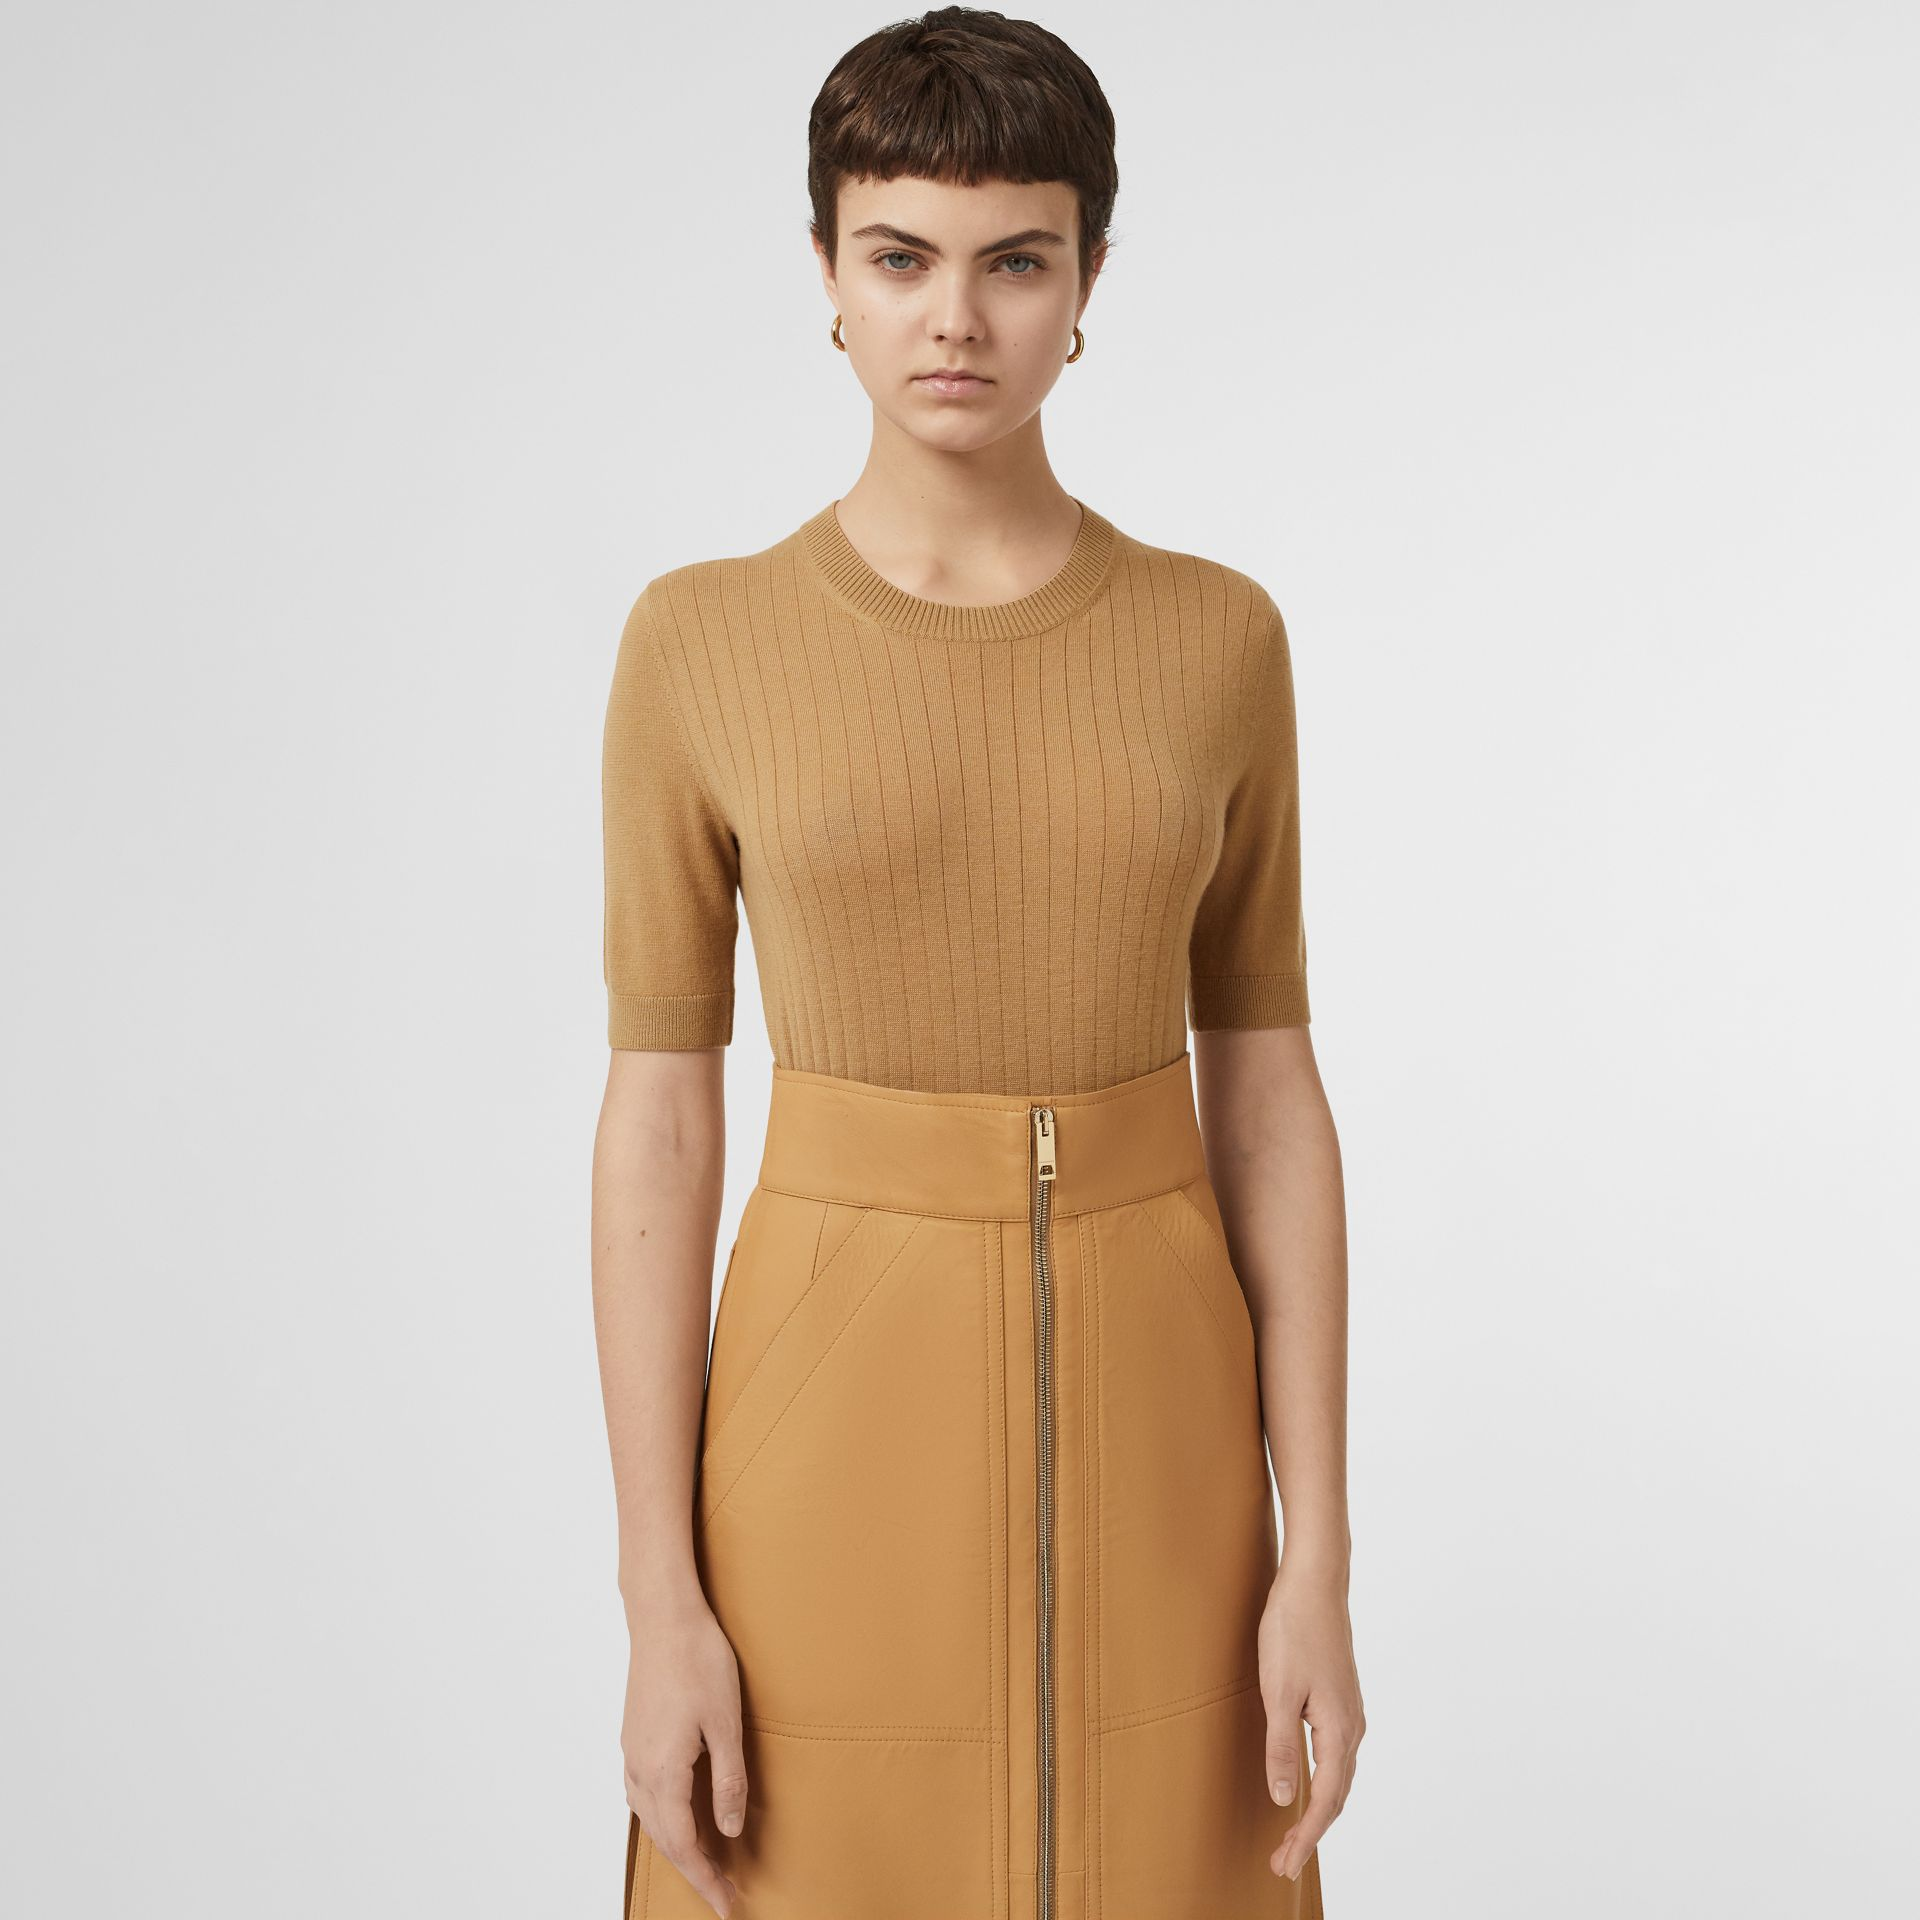 Short-sleeve Rib Knit Cashmere Sweater in Camel - Women | Burberry United States - gallery image 5